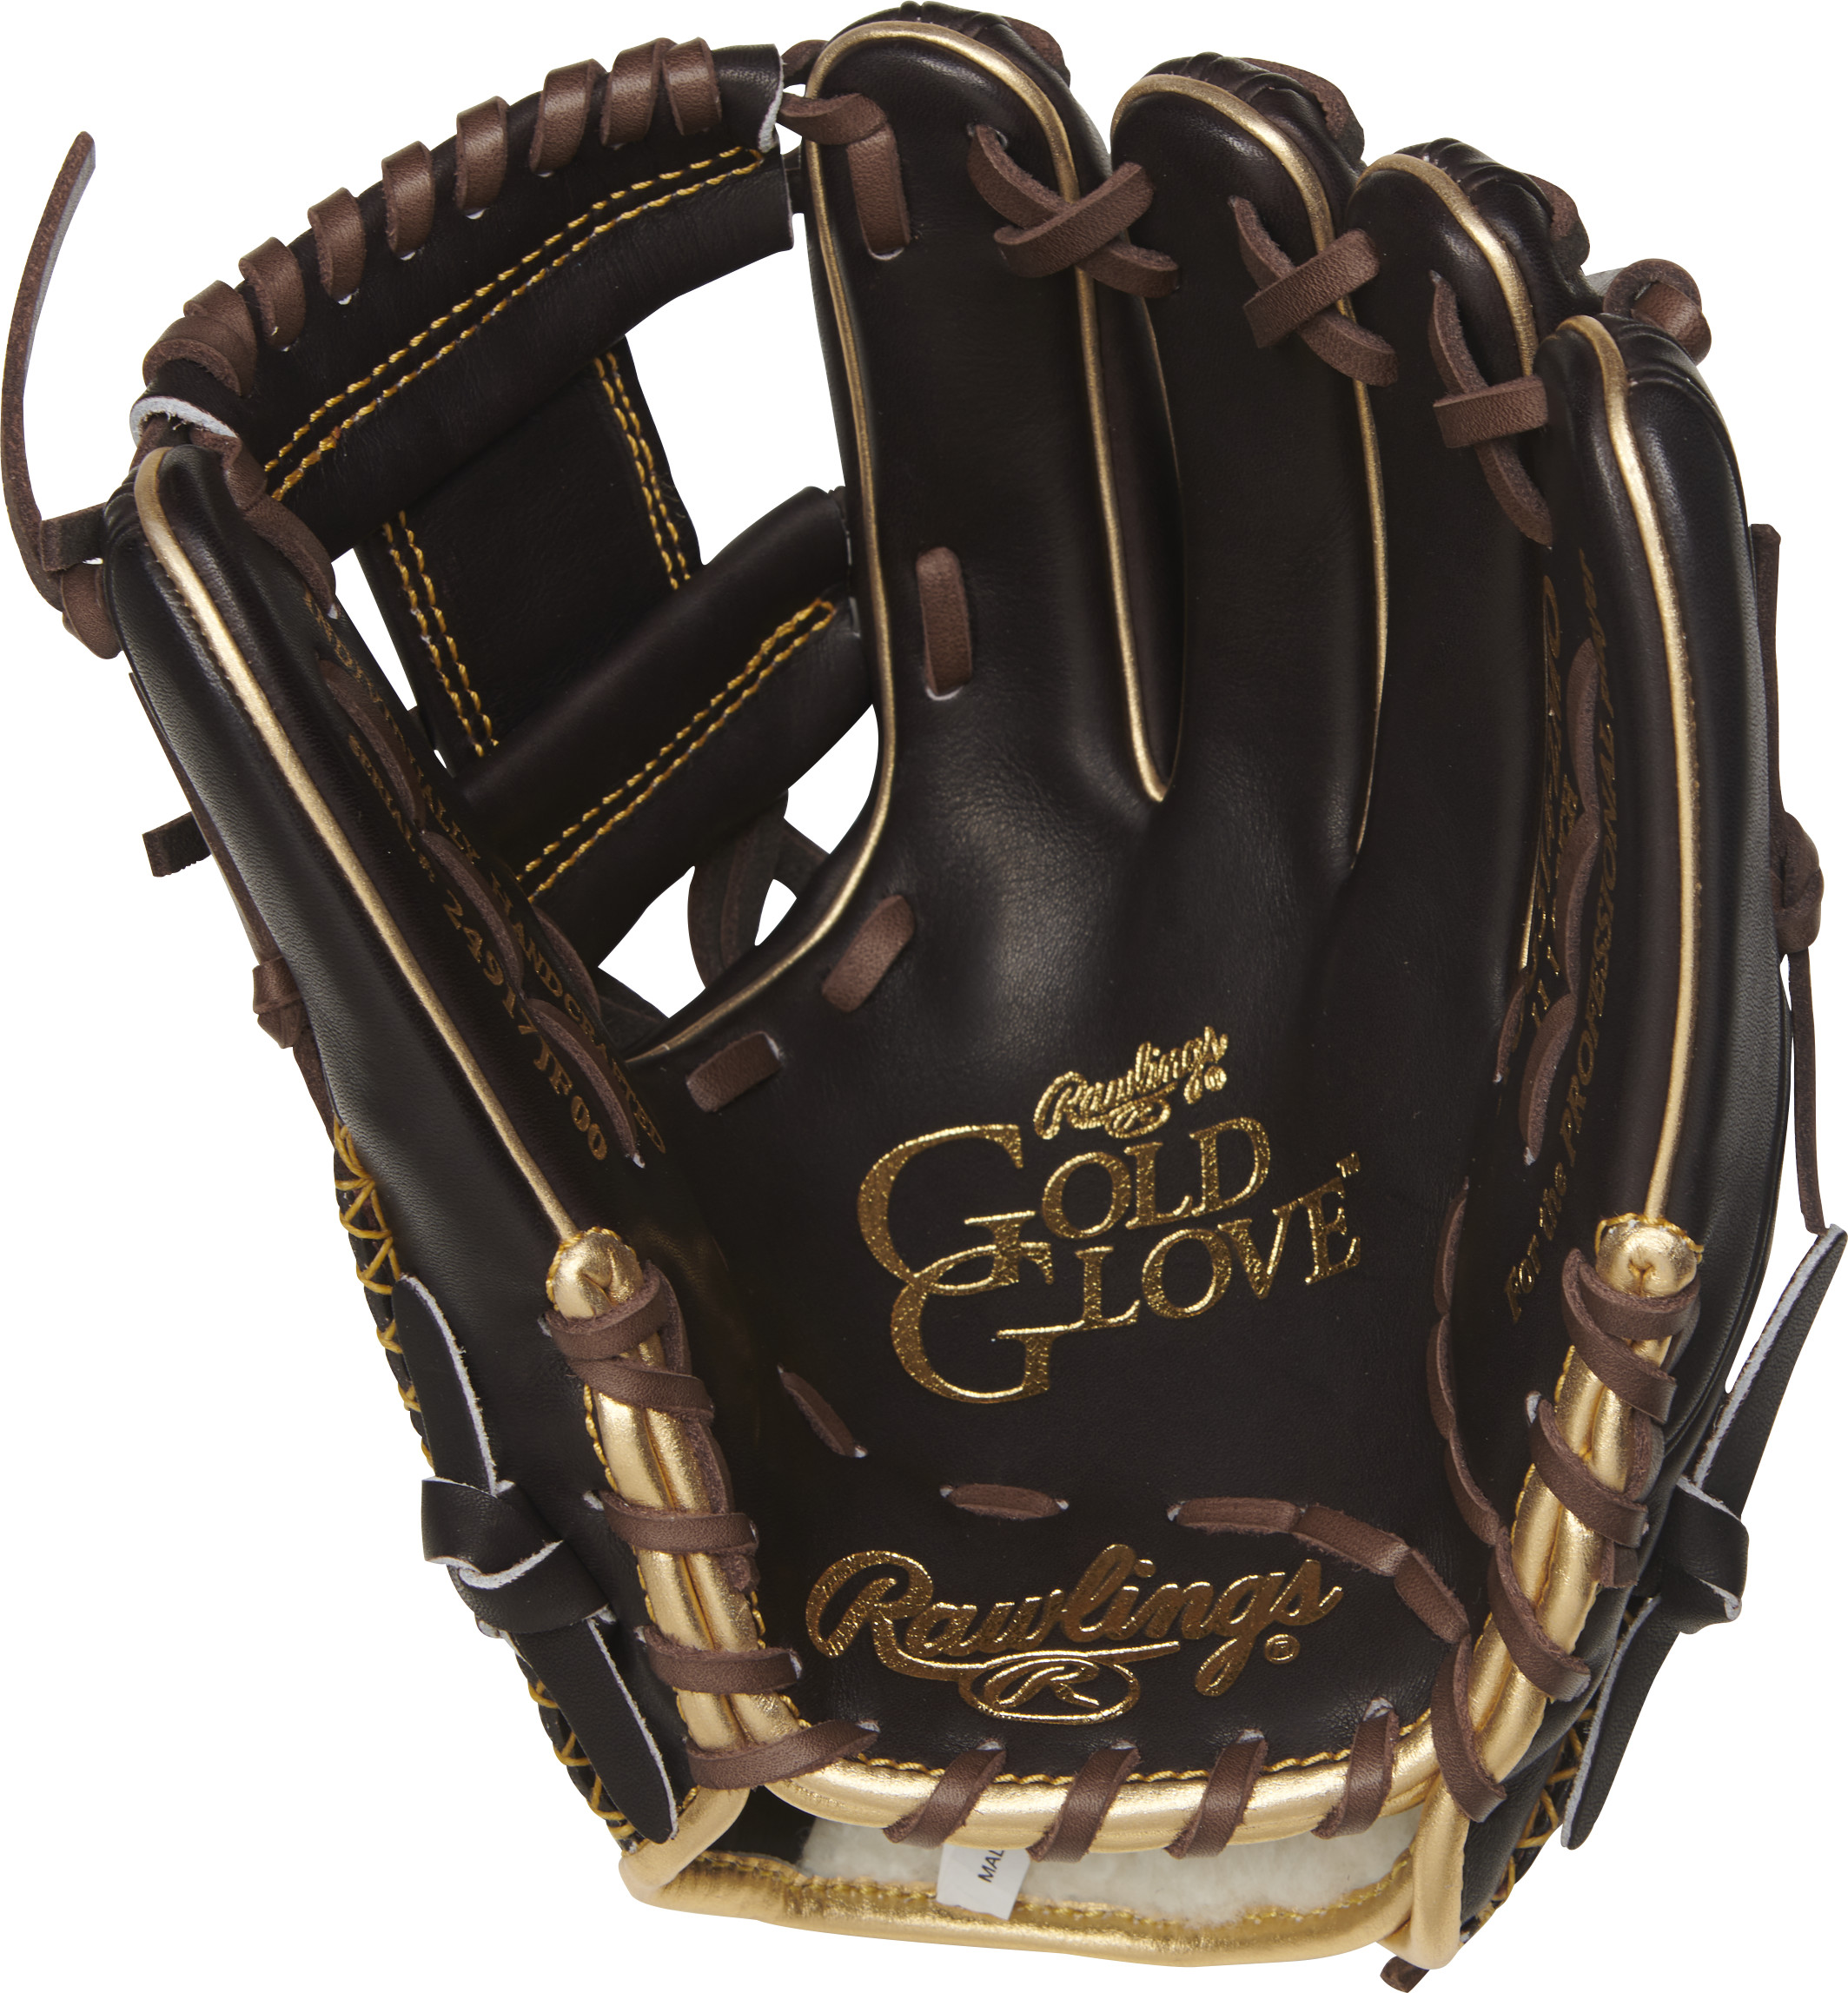 http://www.bestbatdeals.com/images/gloves/rawlings/RGG314-2MO-1.jpg